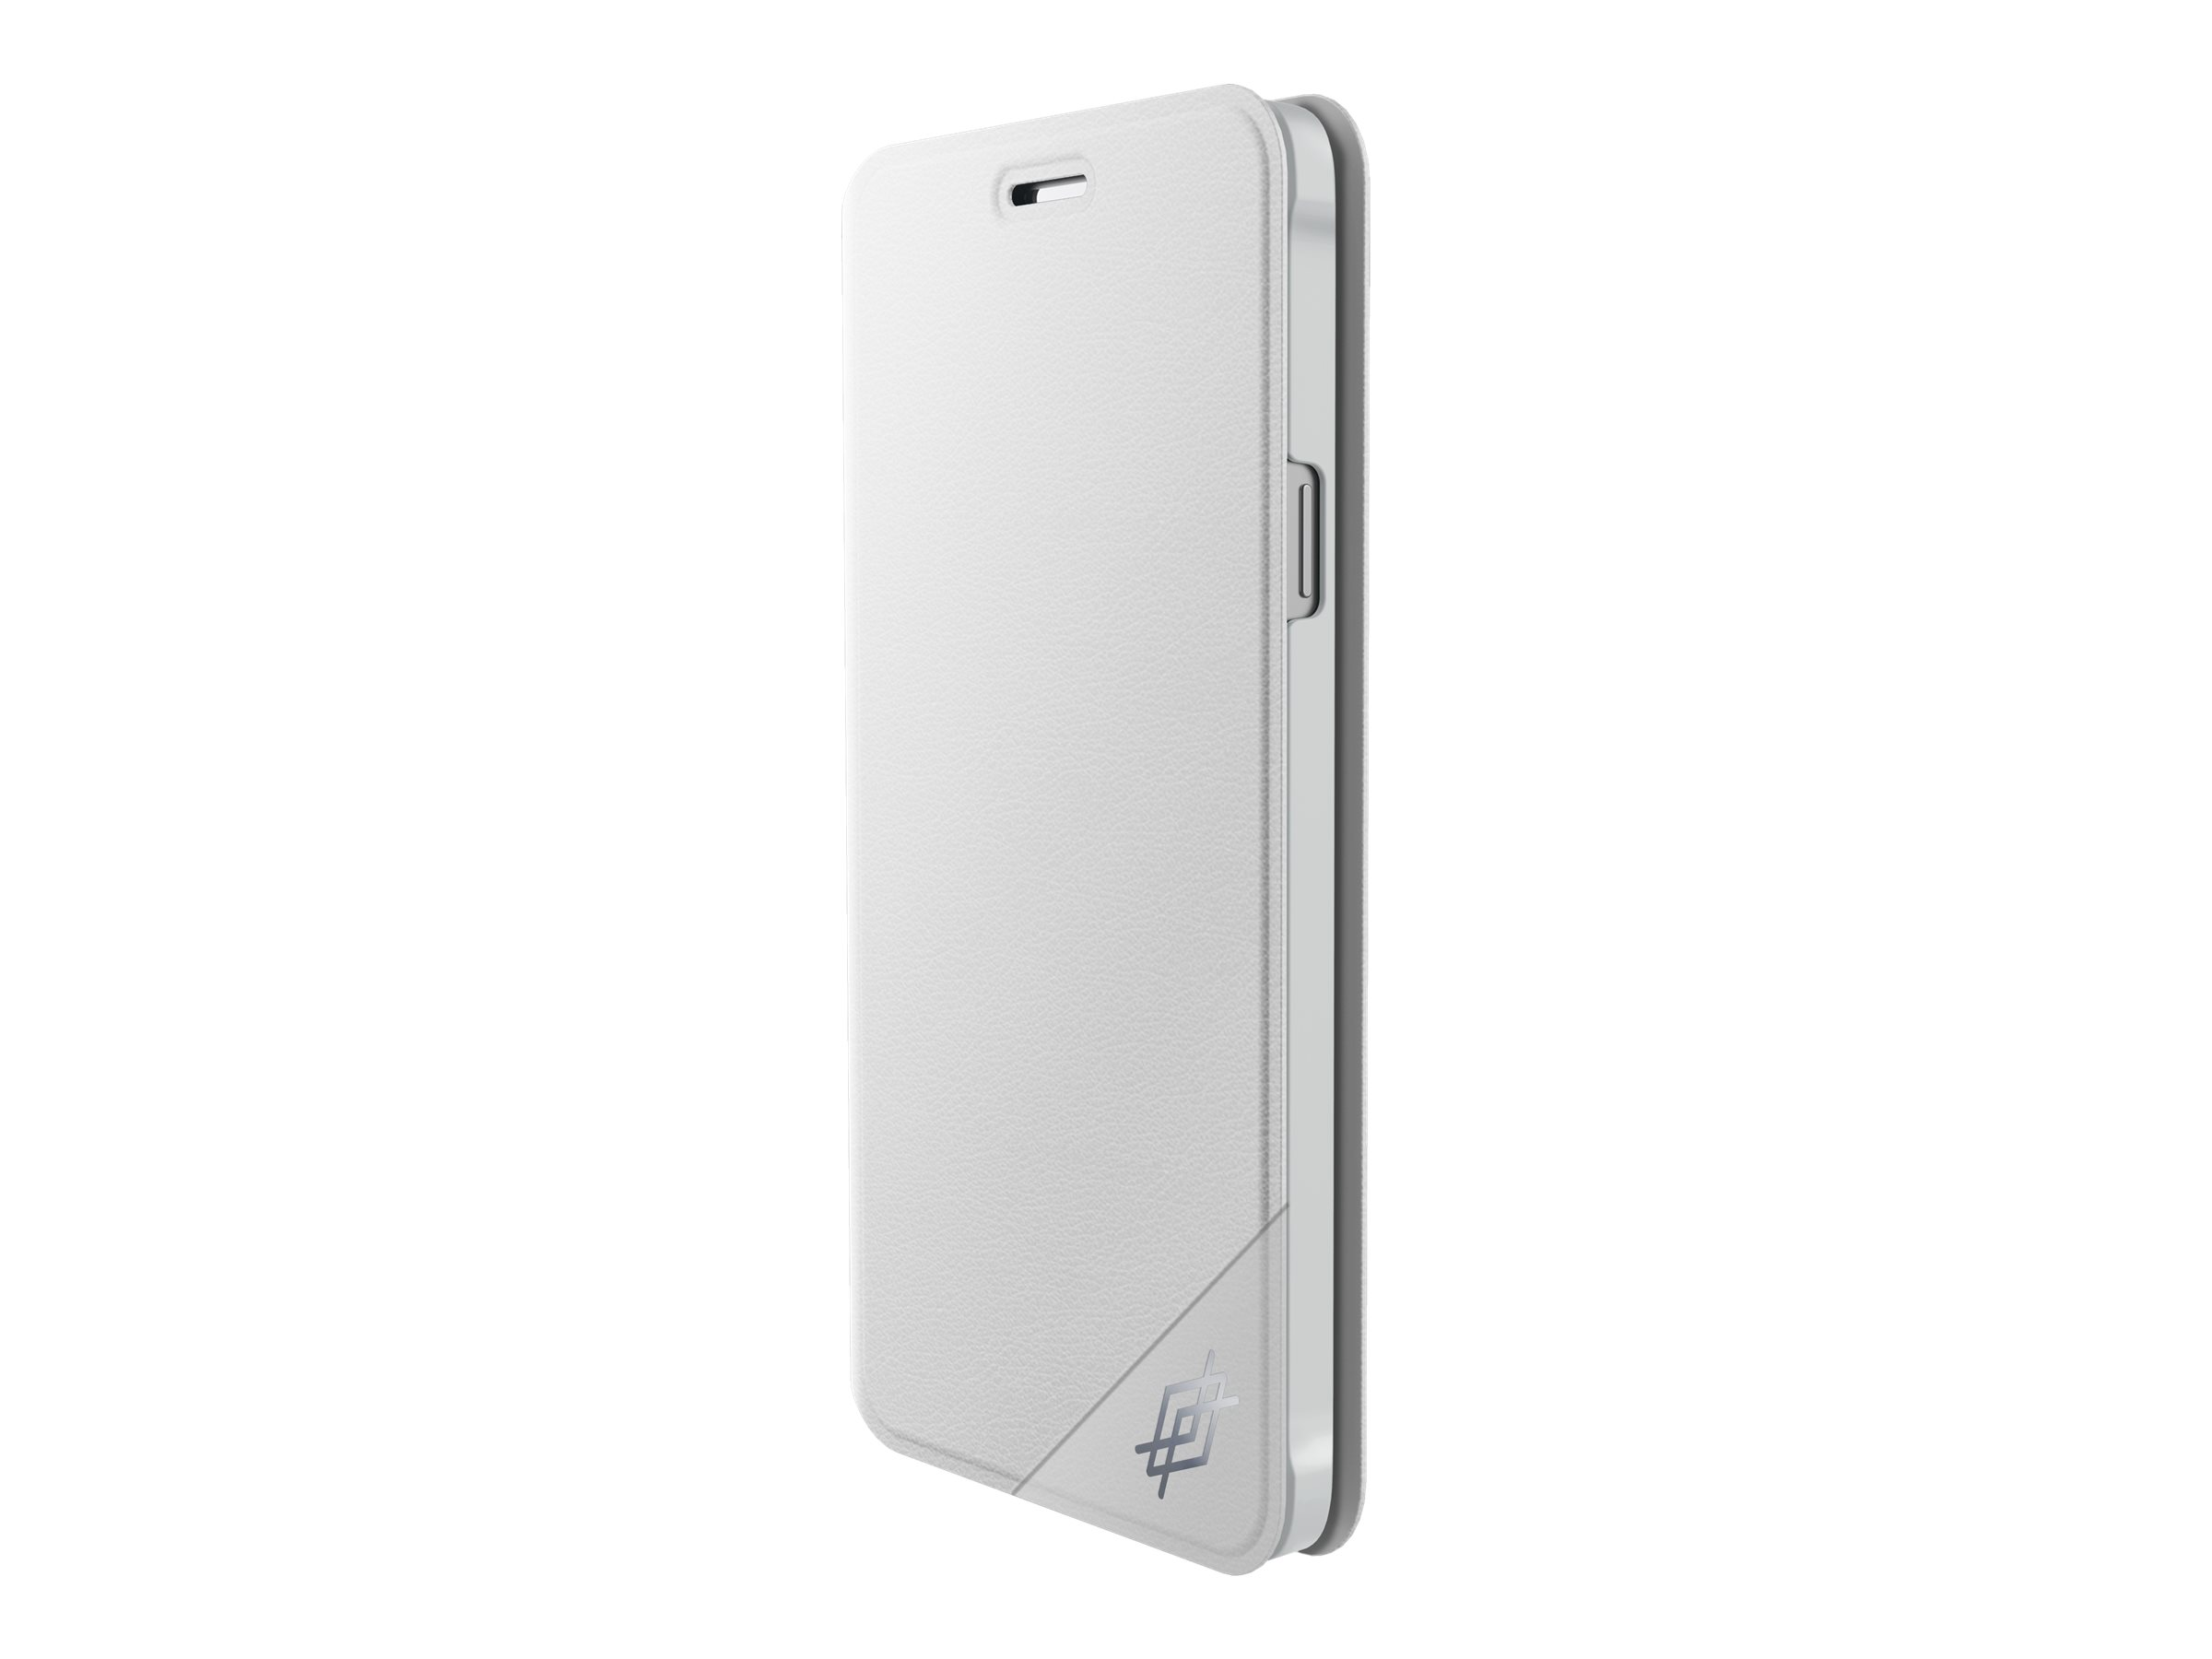 X-Doria Dash Folio One - Protection à rabat pour Samsung Galaxy Note 4 - blanc